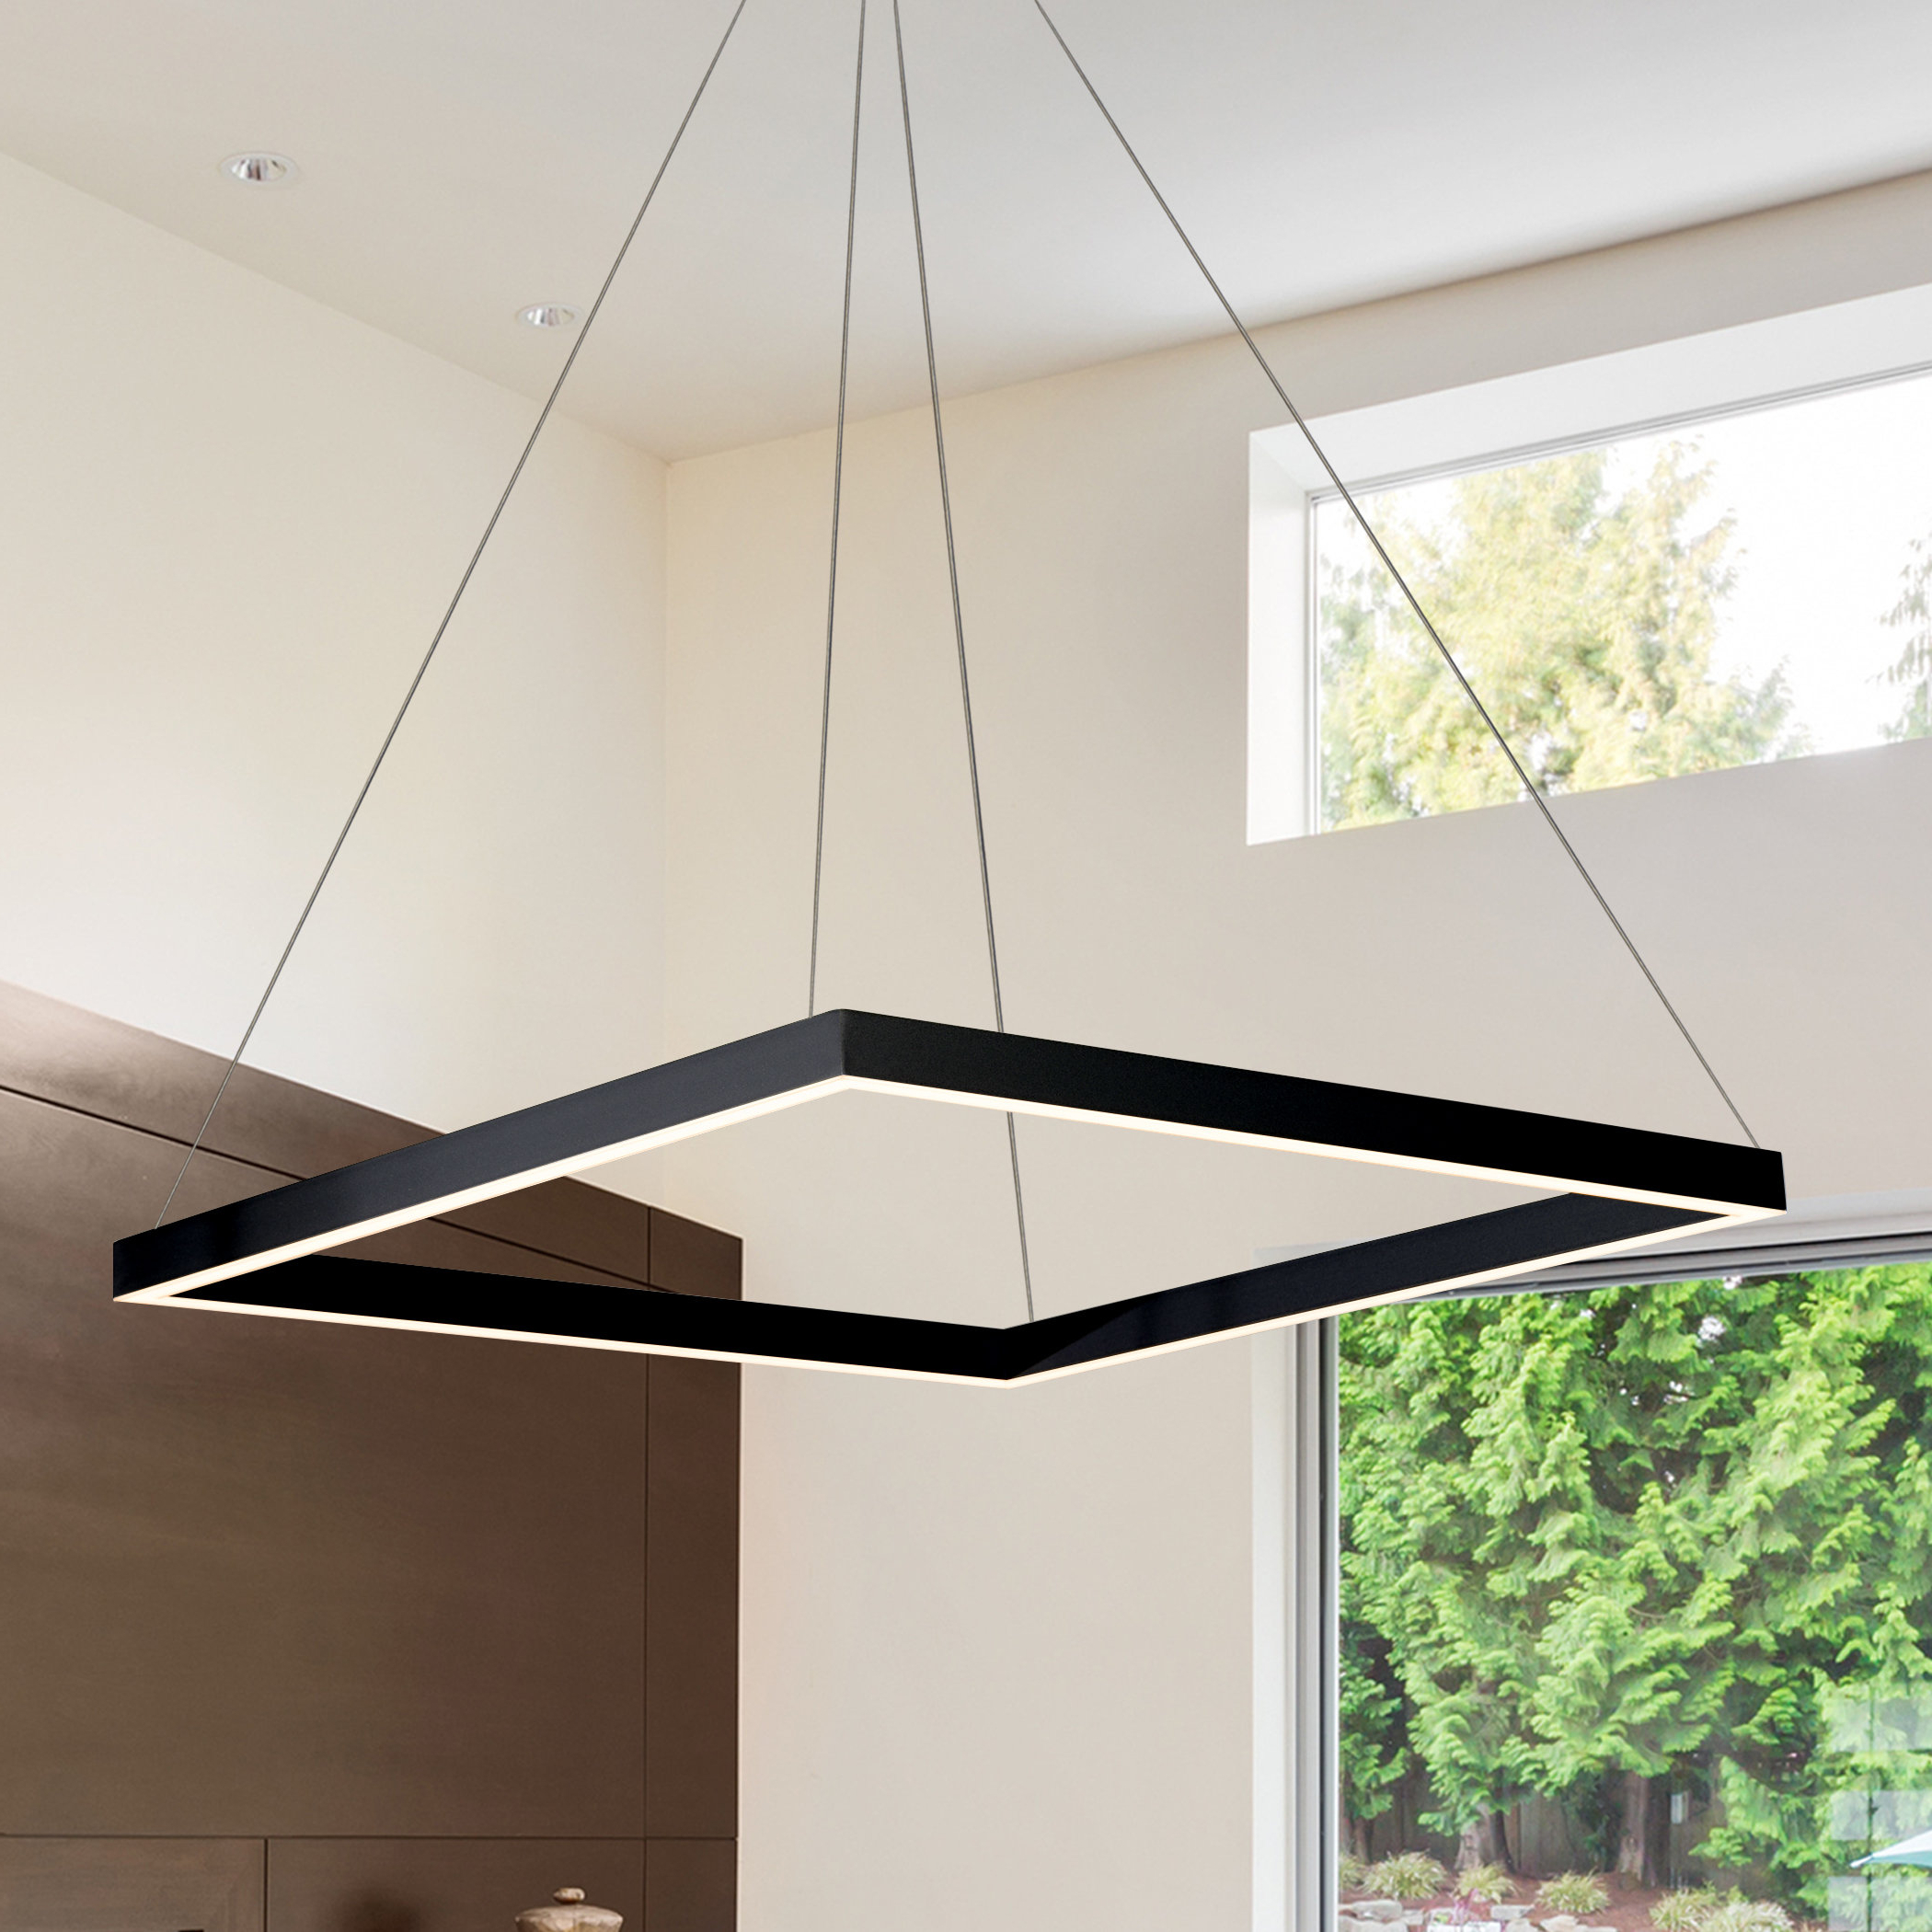 2019 Black Square & Rectangular Chandeliers You'll Love In 2019 With Hewitt 4 Light Square Chandeliers (View 14 of 25)